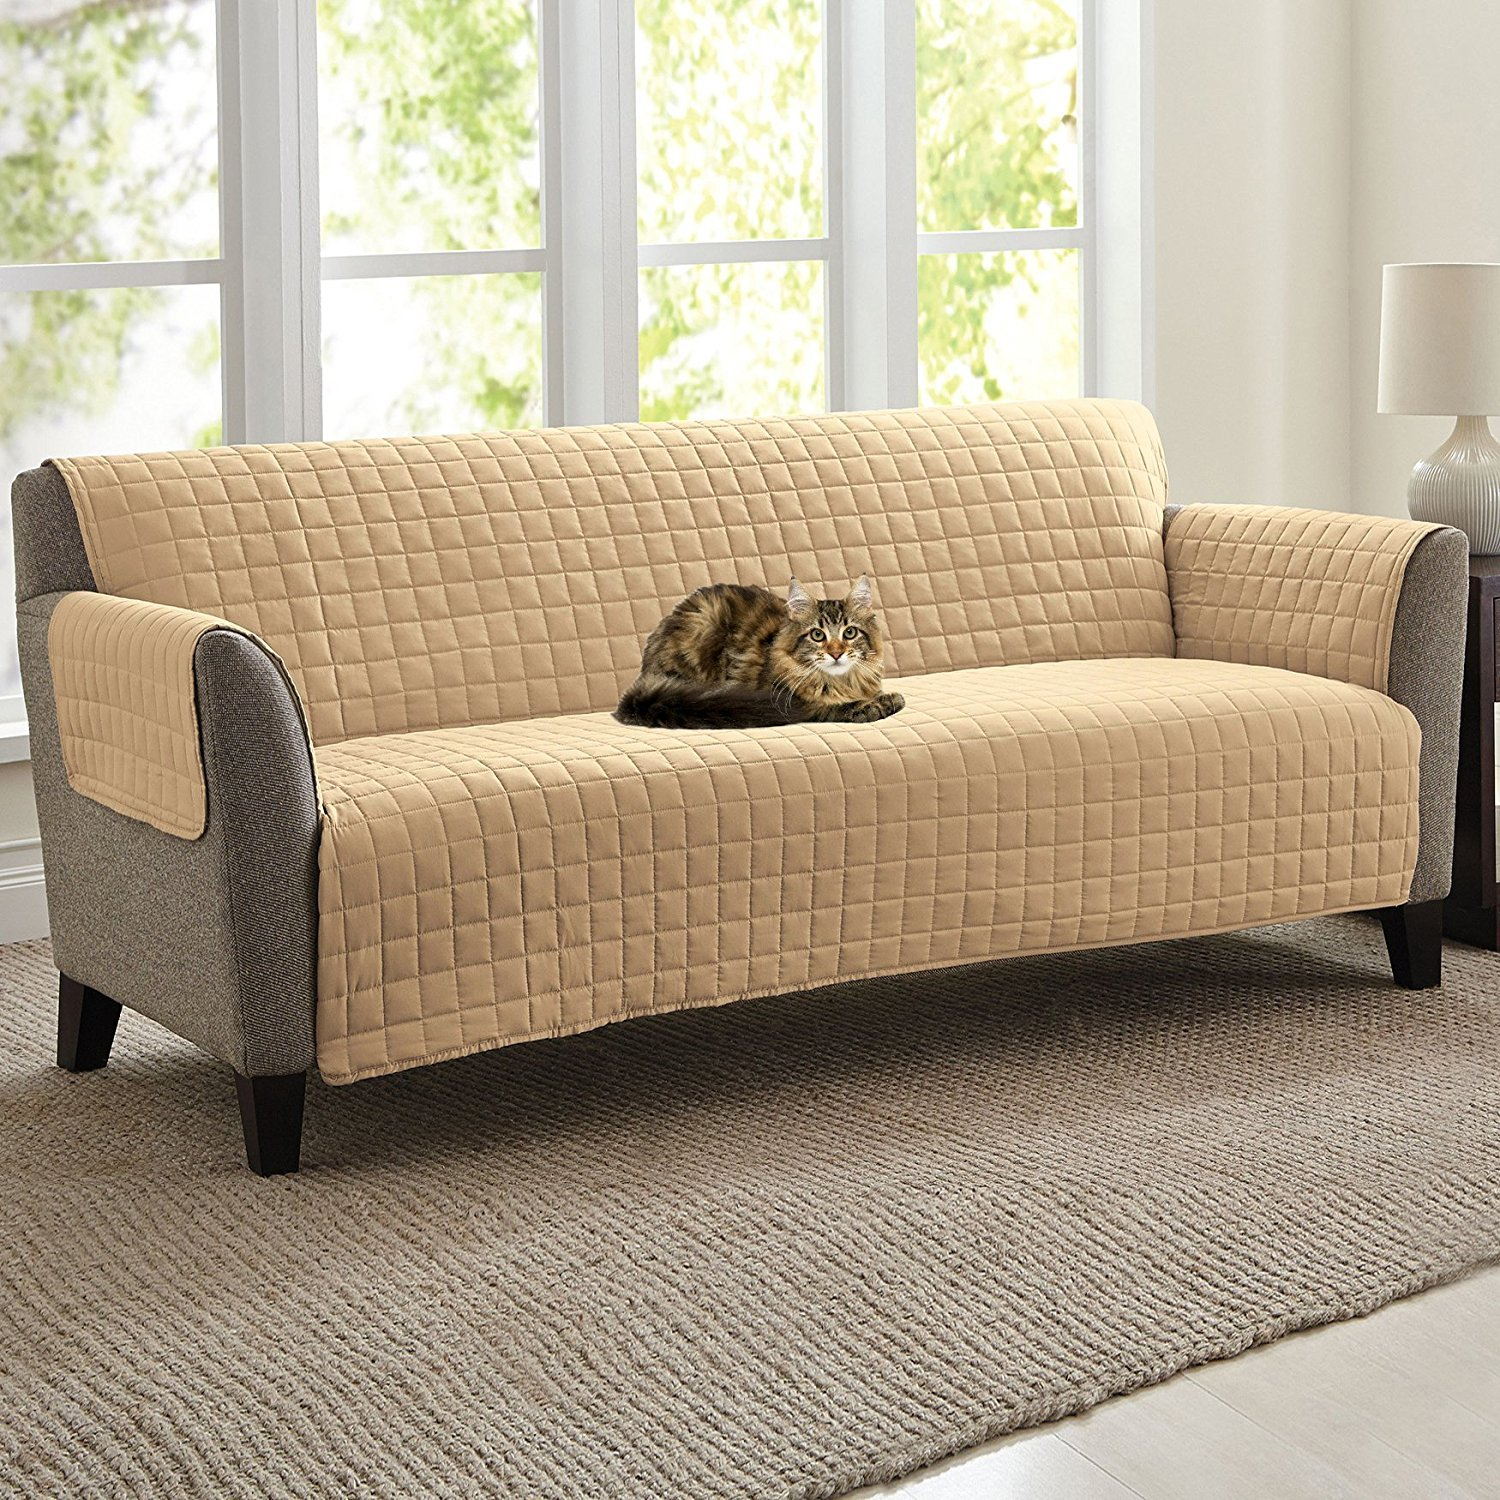 Amazon Quilted Microfiber Pet Dog Couch Sofa Furniture